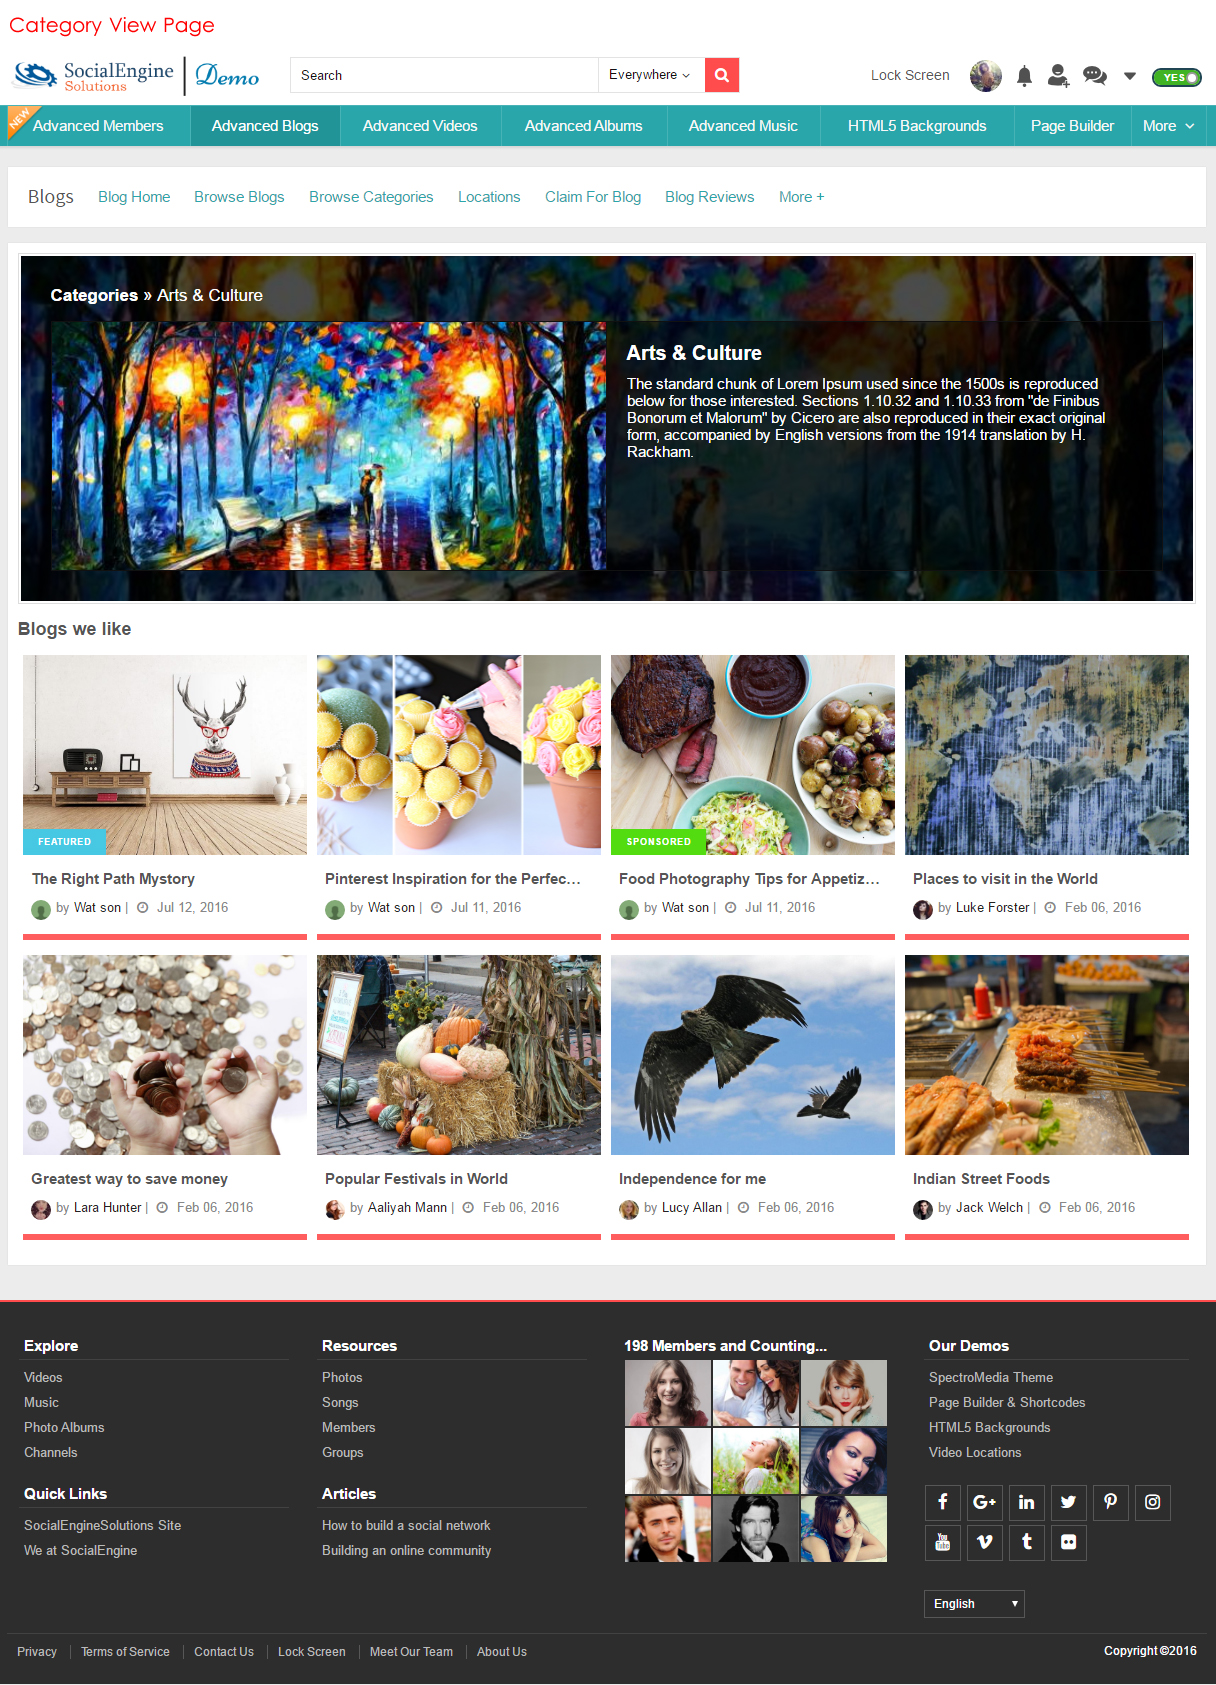 Category ViewPage